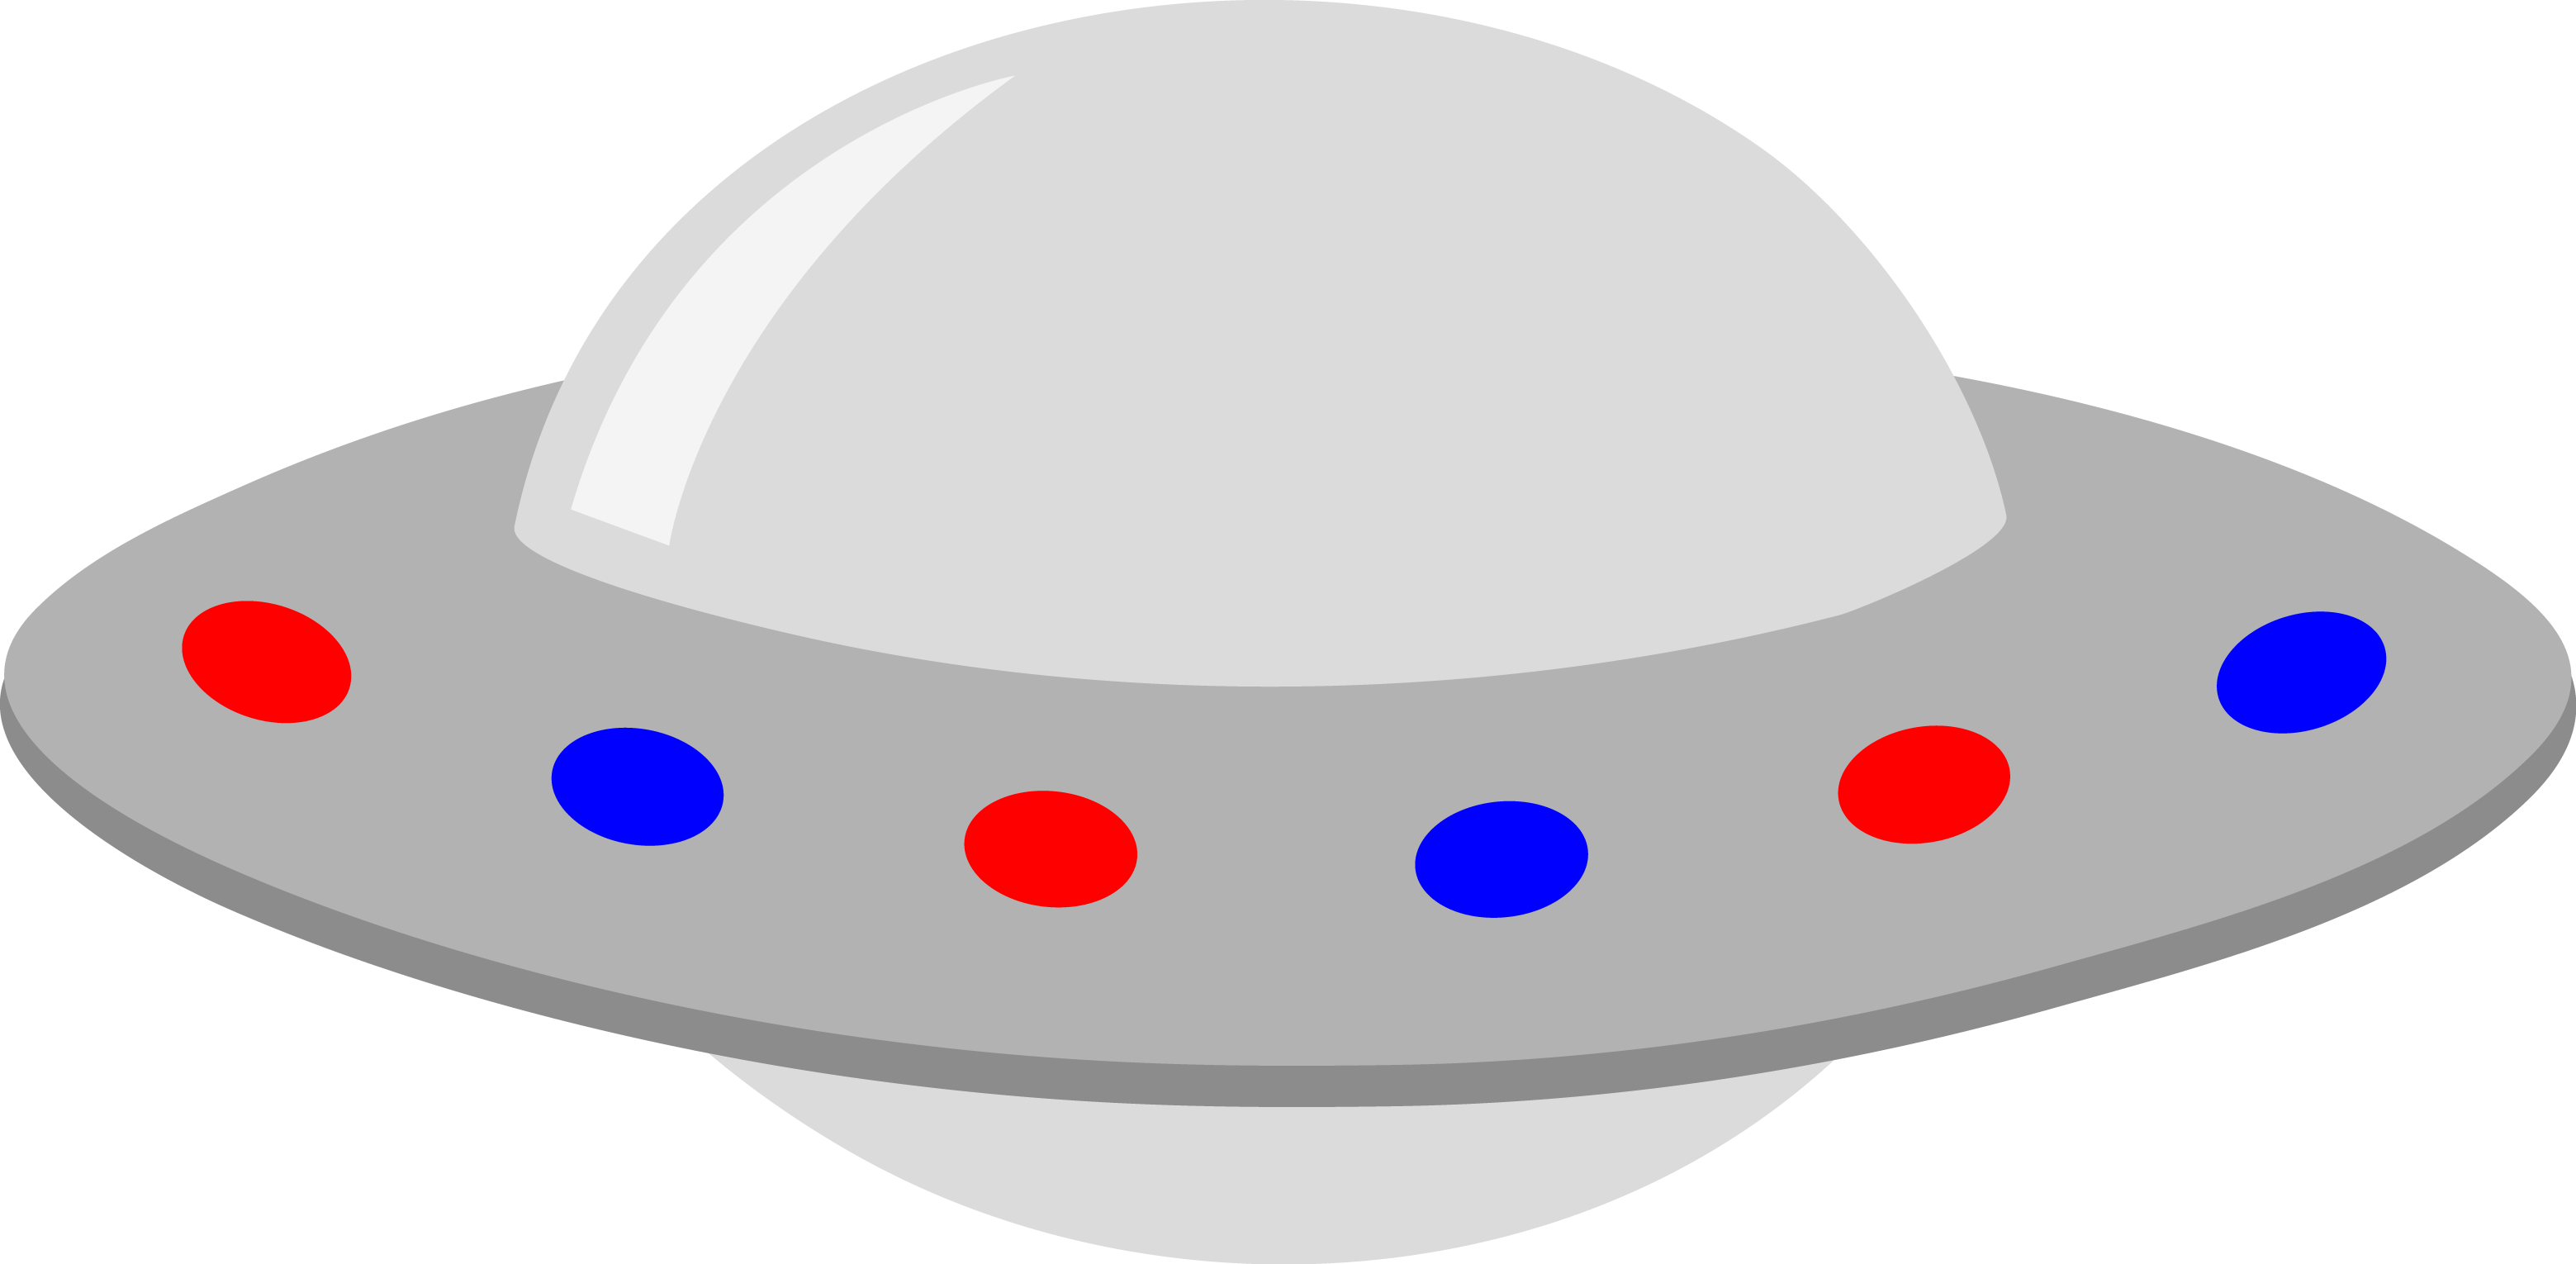 Silver clipart round object Blue Red Silver Unidentified Lights